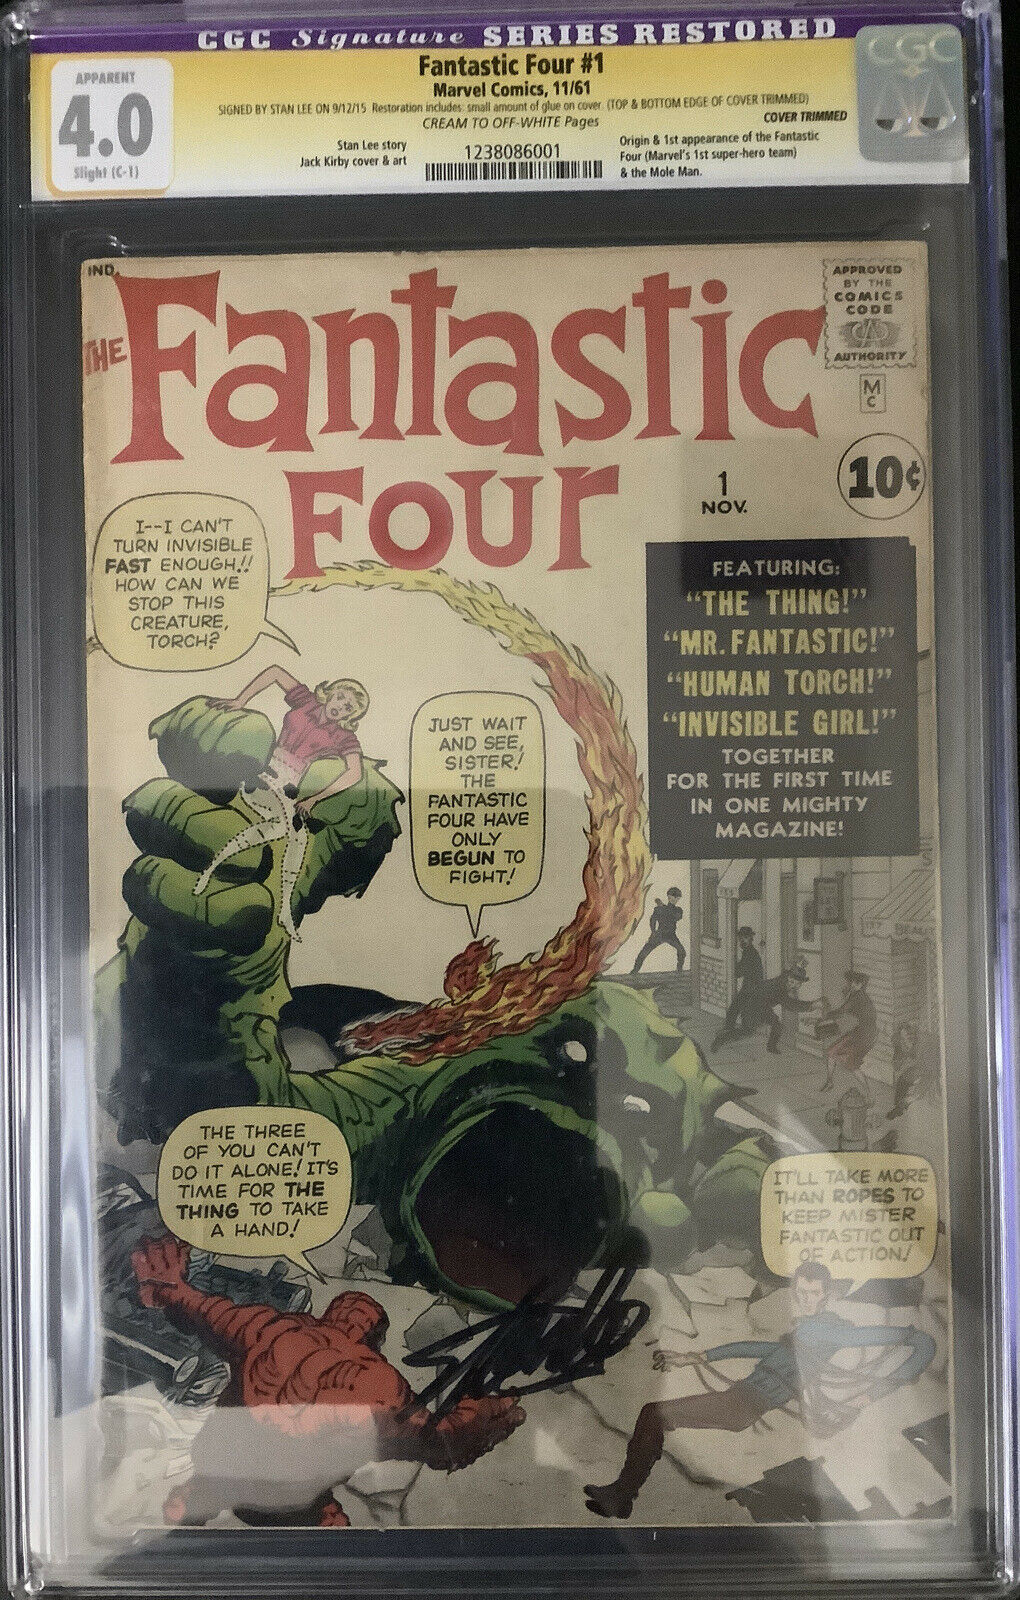 FANTASTIC FOUR #1 CGC SIG SERIES RESTORED 4.0 RESTORED SIGNED BY STAN LEE